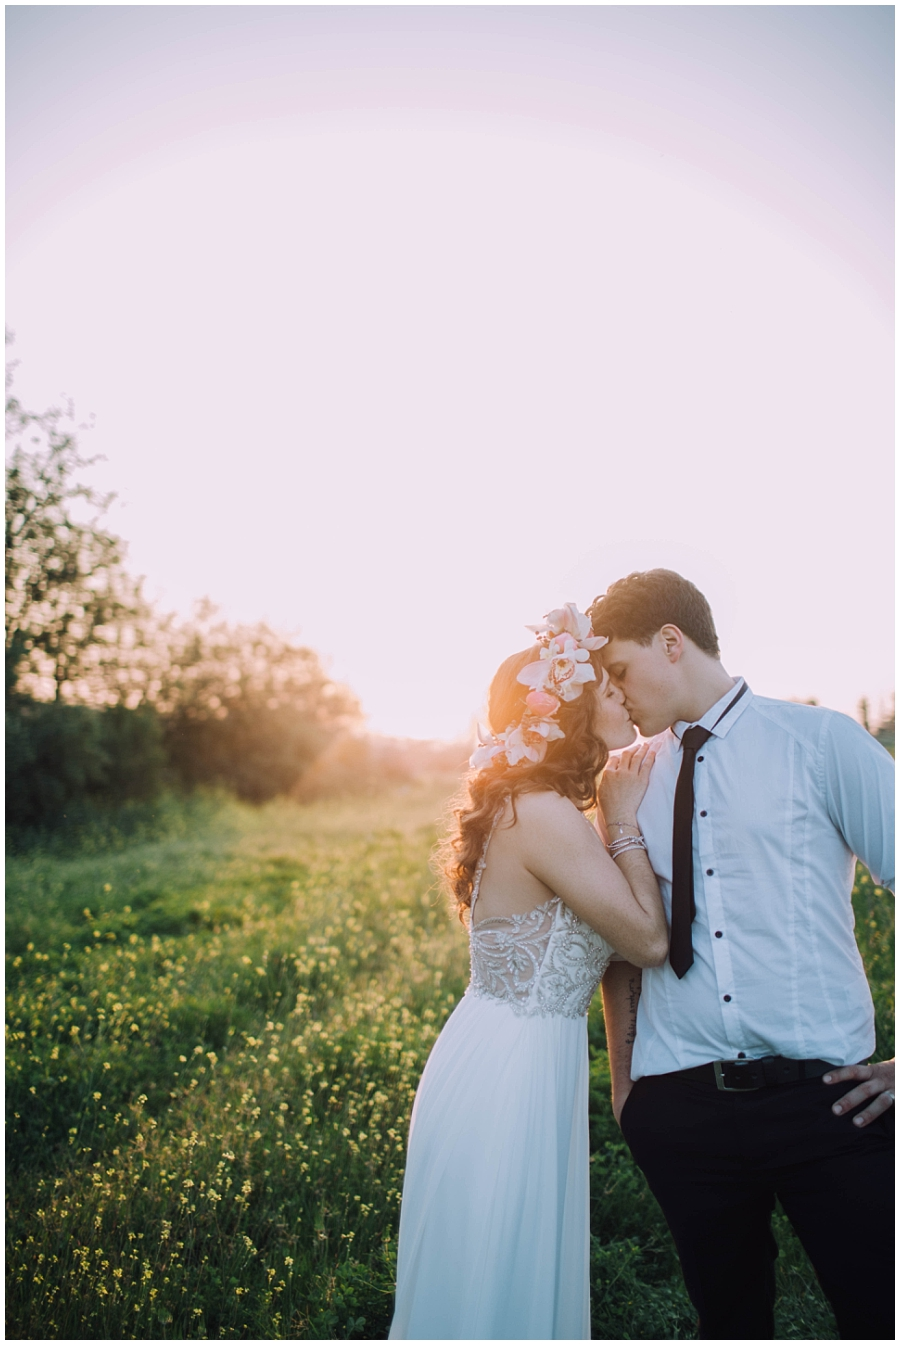 Ronel Kruger Cape Town Wedding and Lifestyle Photographer_7343.jpg